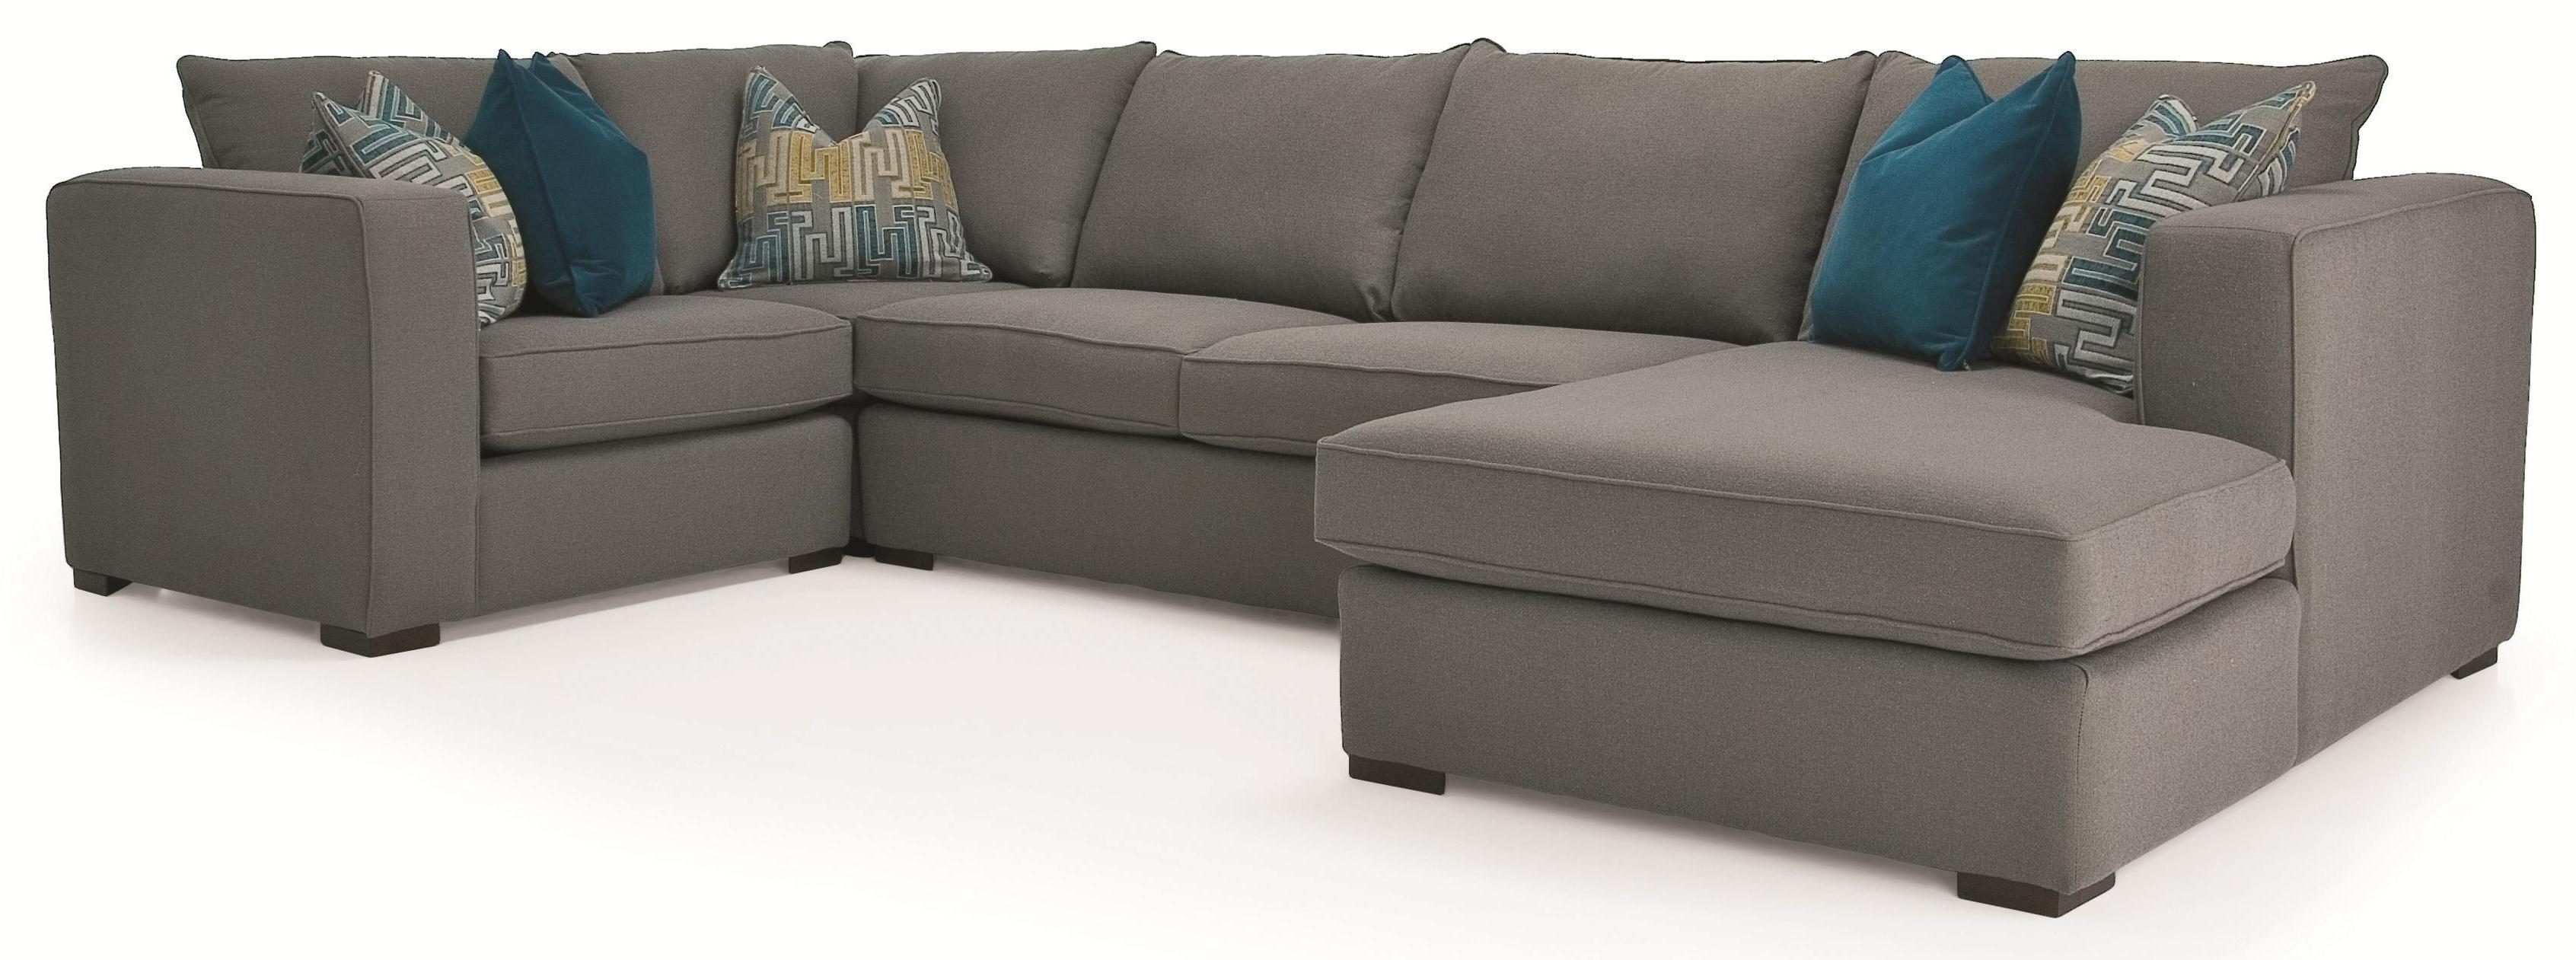 2900 4 pc. Sectional by Decor-Rest at Wayside Furniture